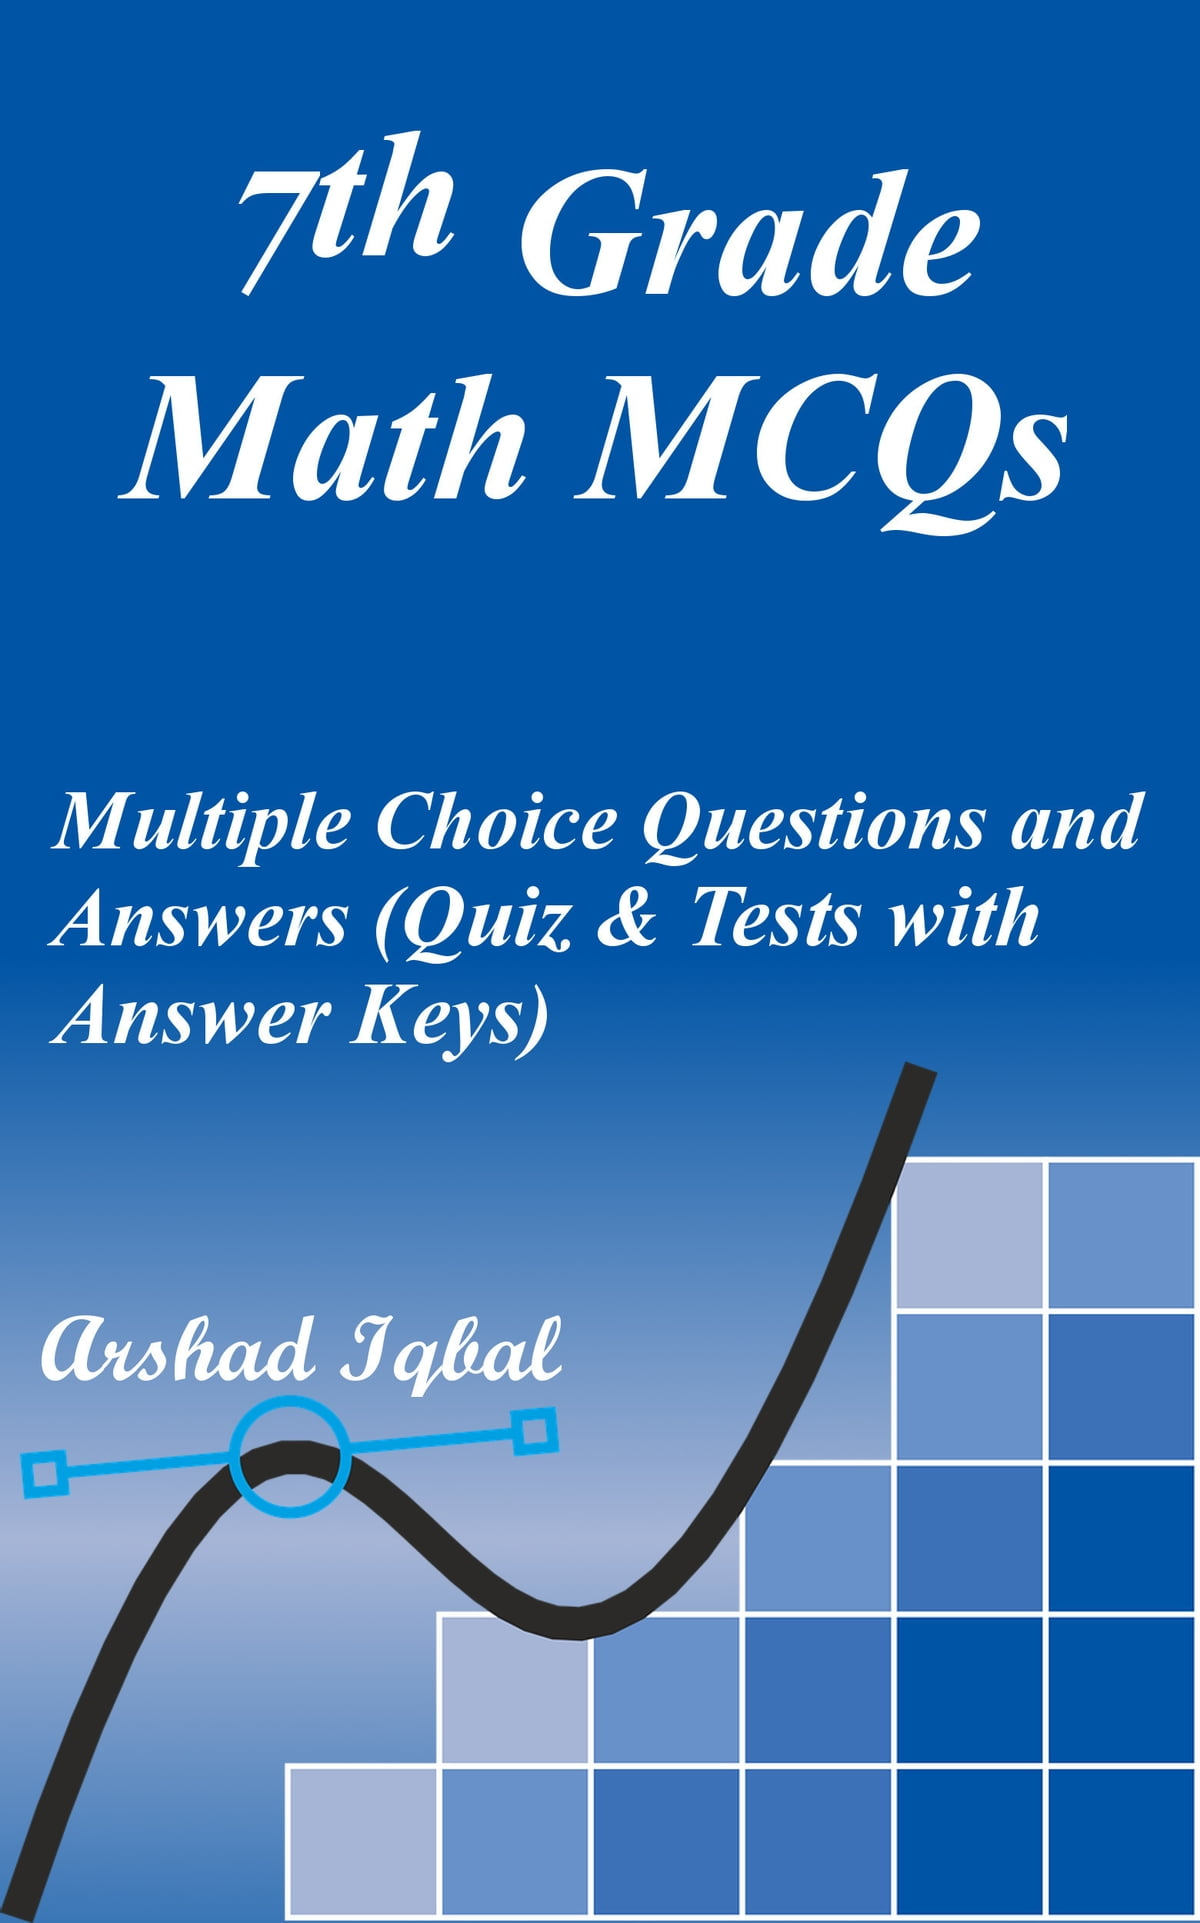 7th Grade Math Mcqs Multiple Choice Questions And Answers